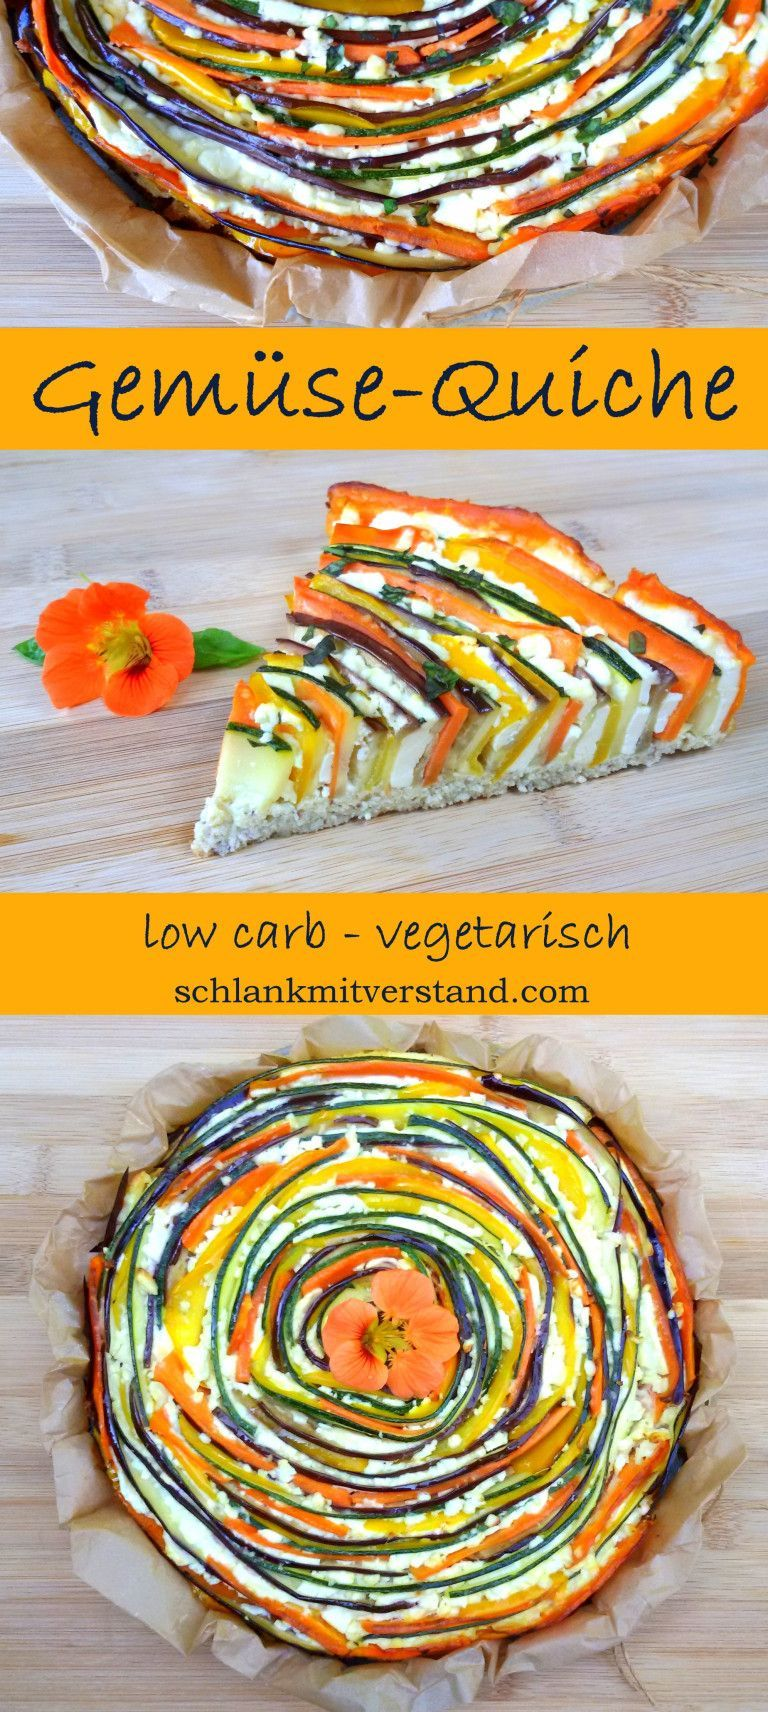 Vegetable quiche low carb vegetarian glutenfree  Vegetable quiche low carb vegetarian glutenfree  low carb recipes  slimminded